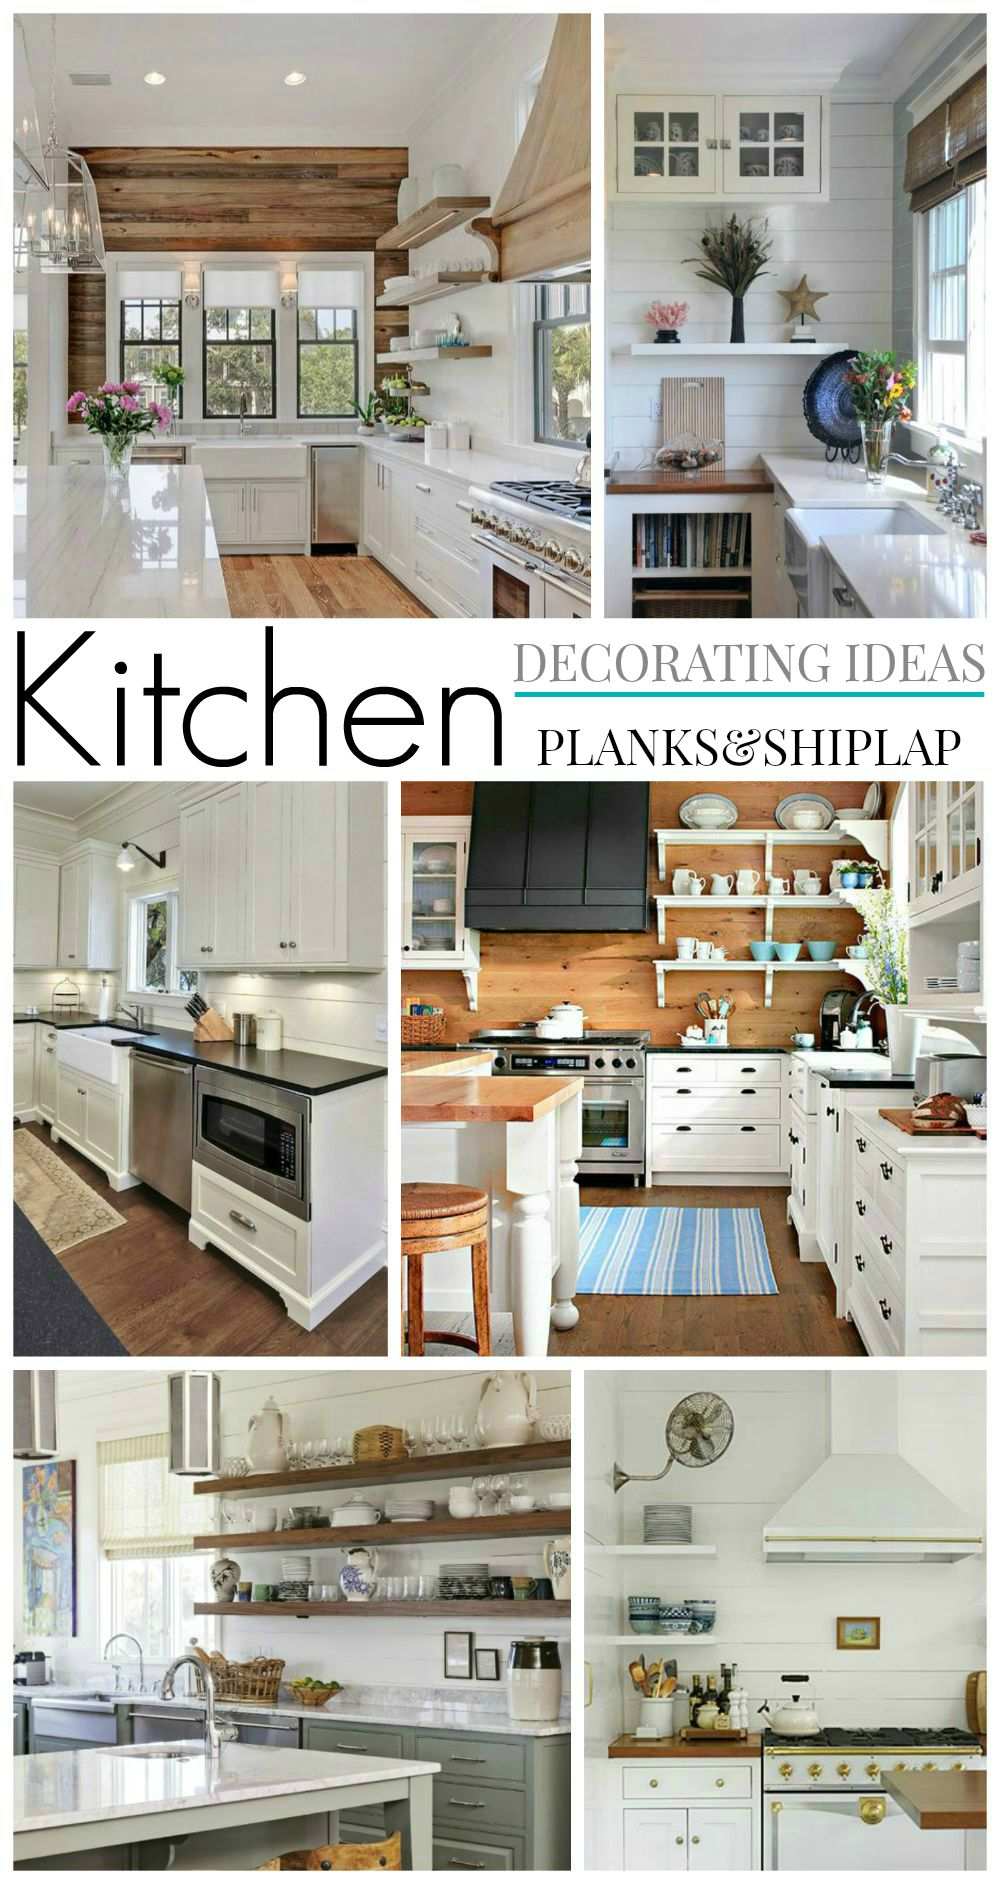 Kitchen Ideas - Plank and Shiplap Wall treatments